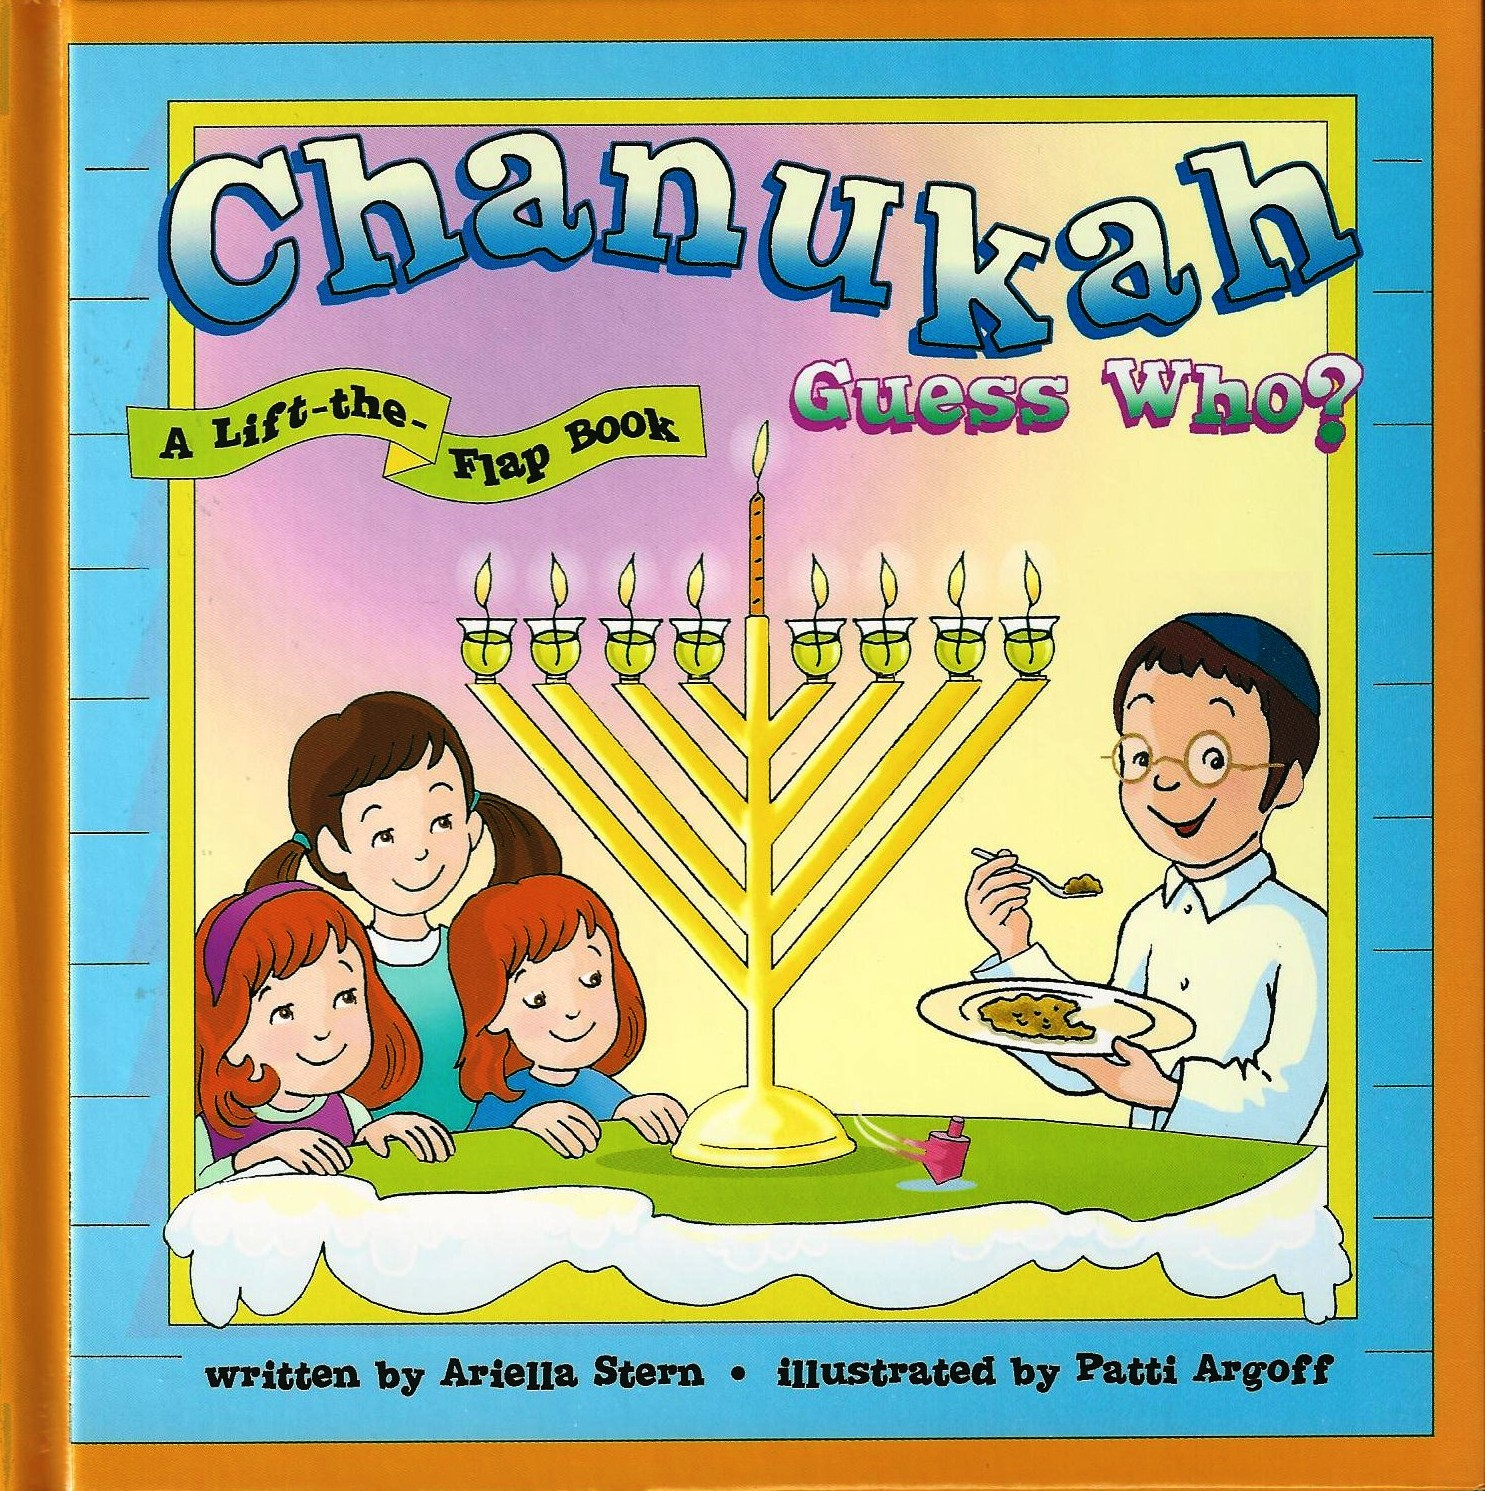 Chanuka guess who? Lift the flap book